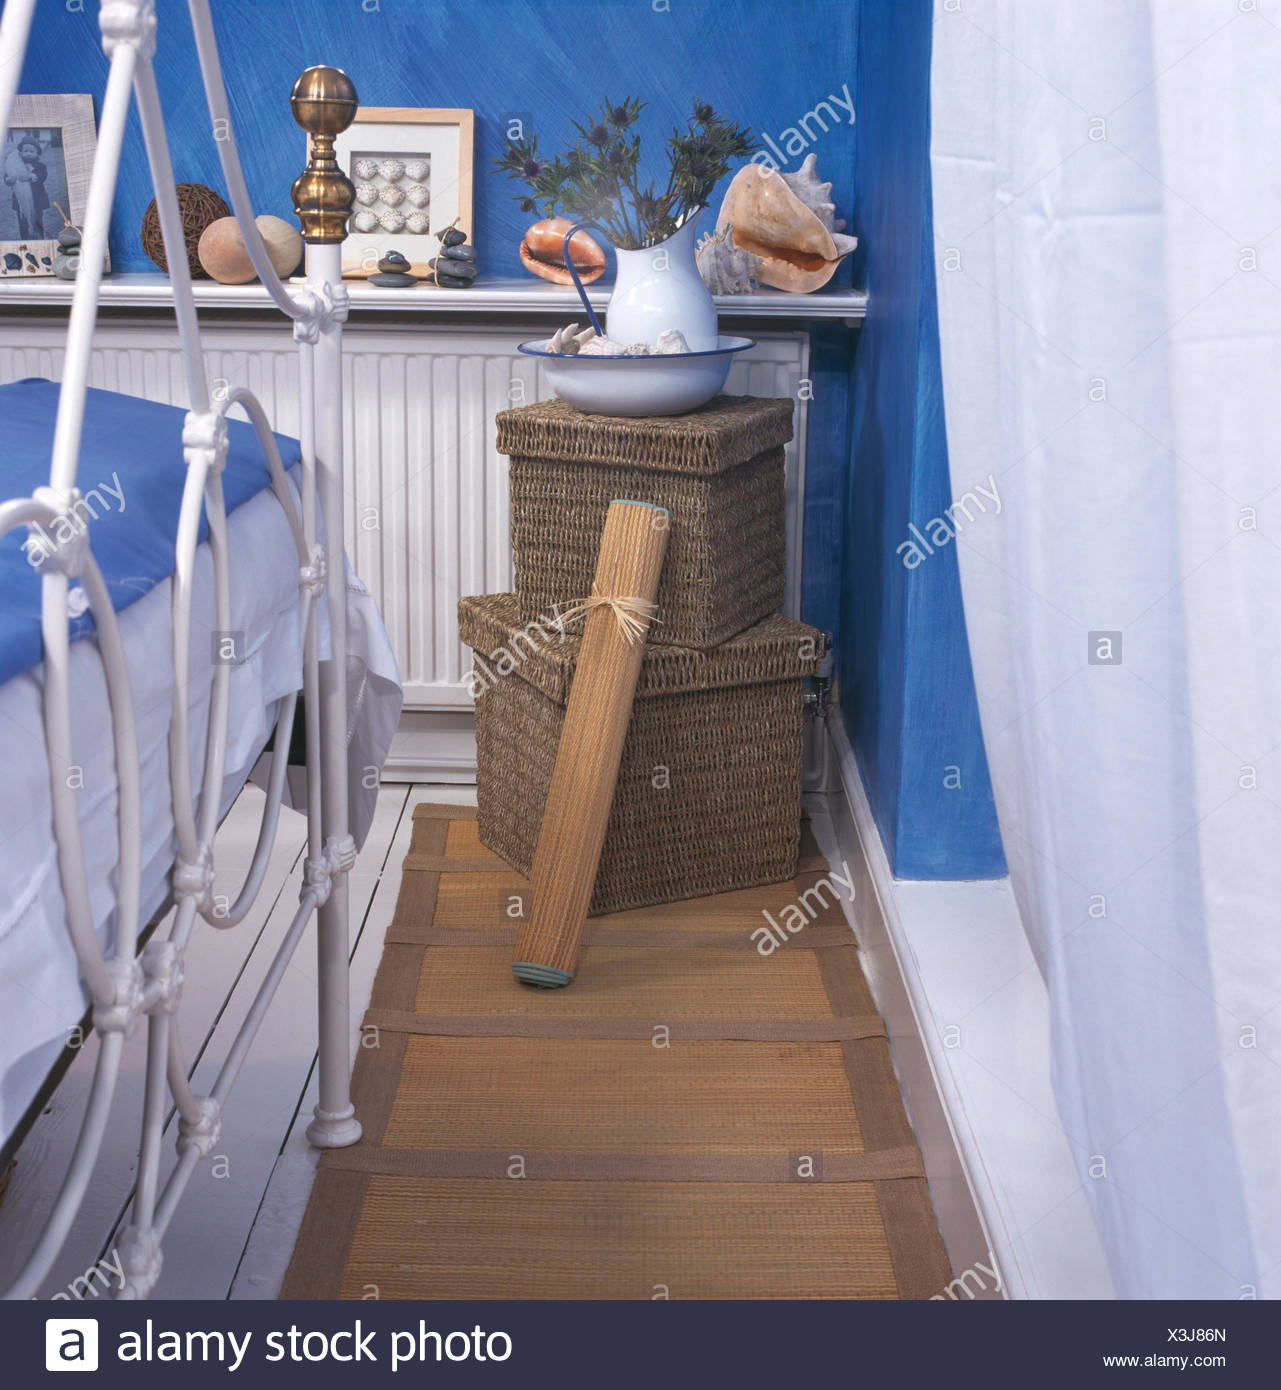 Seagrass storage boxes in bright blue economy style bedroom ...